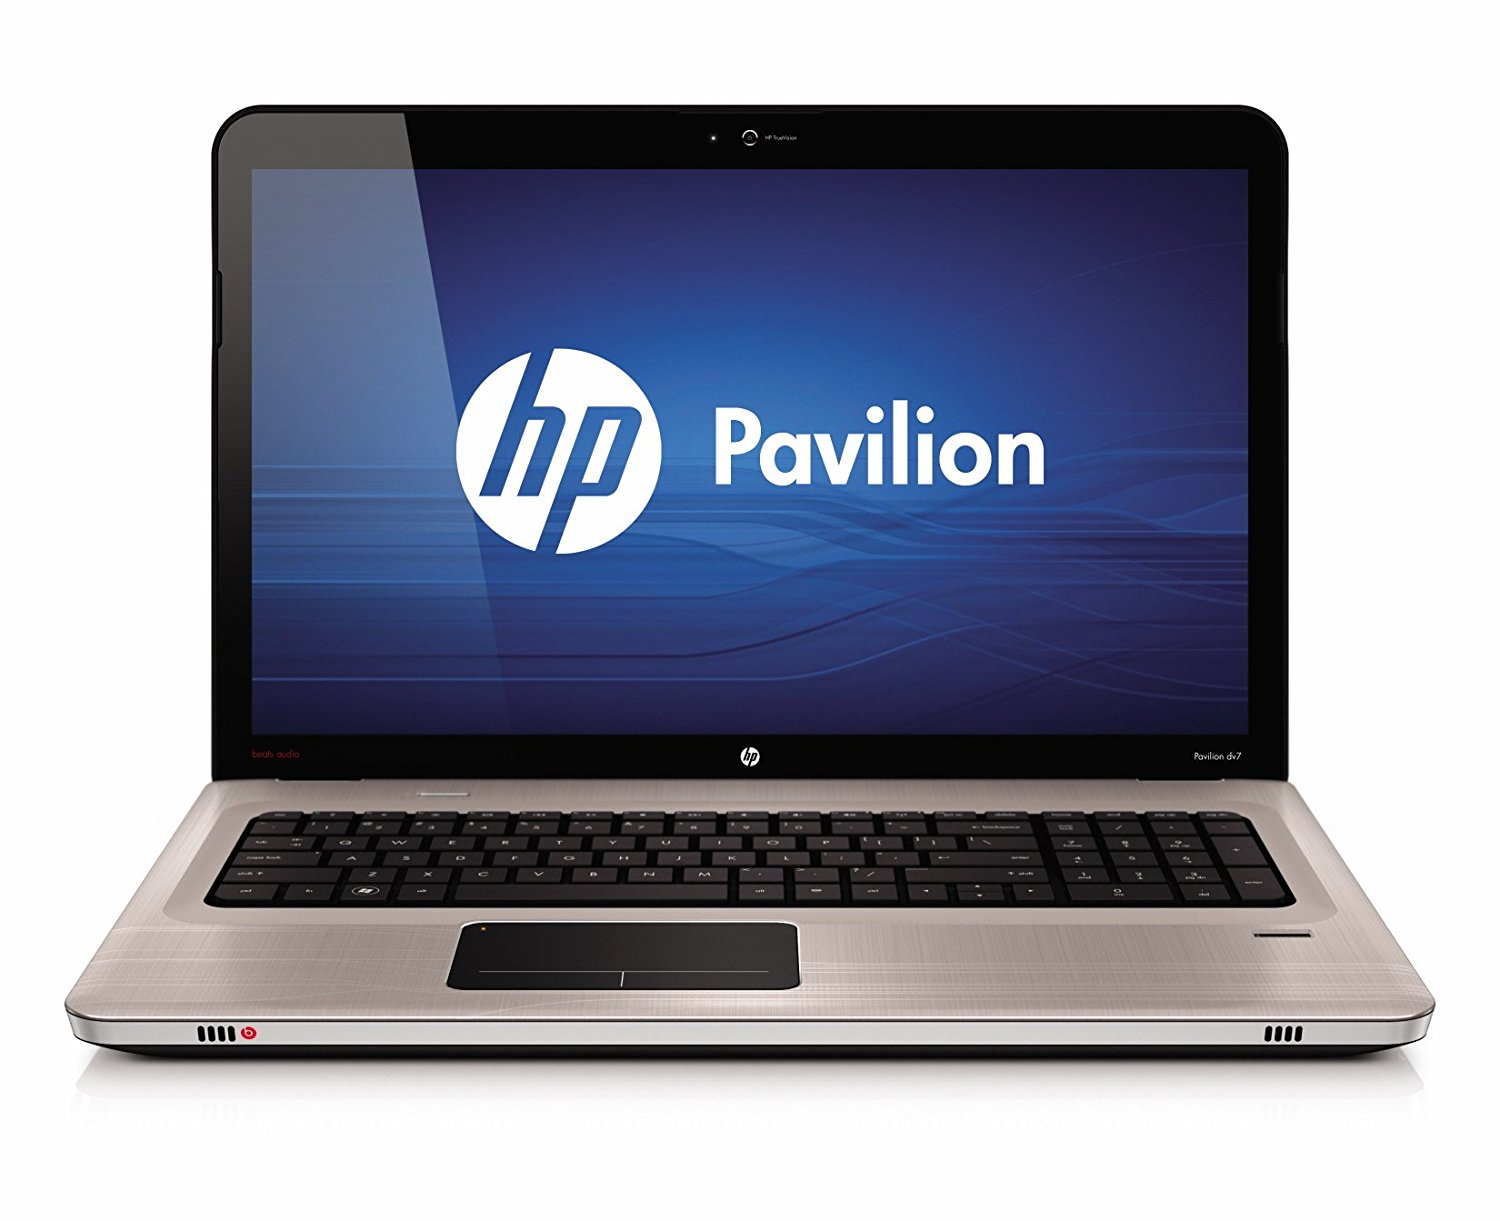 HP Pavilion HDX9000 CTO Touchpad Drivers for Windows 7